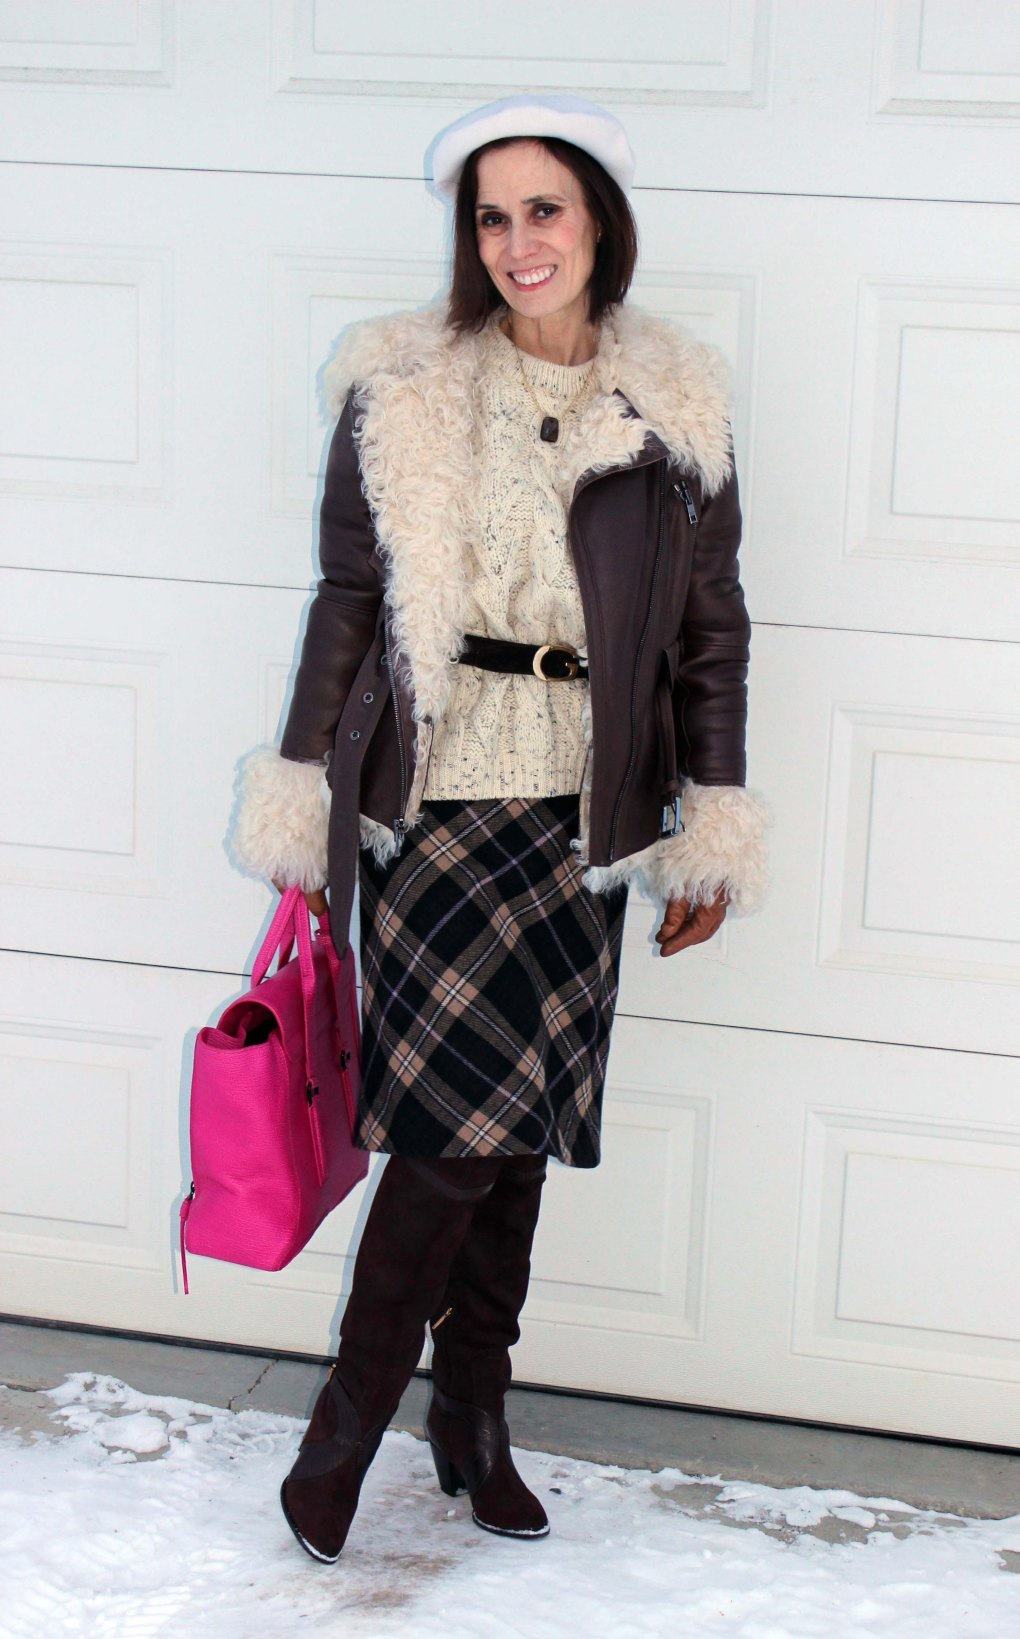 mature fashion woman in over-the-knee boots and skirt weekend look